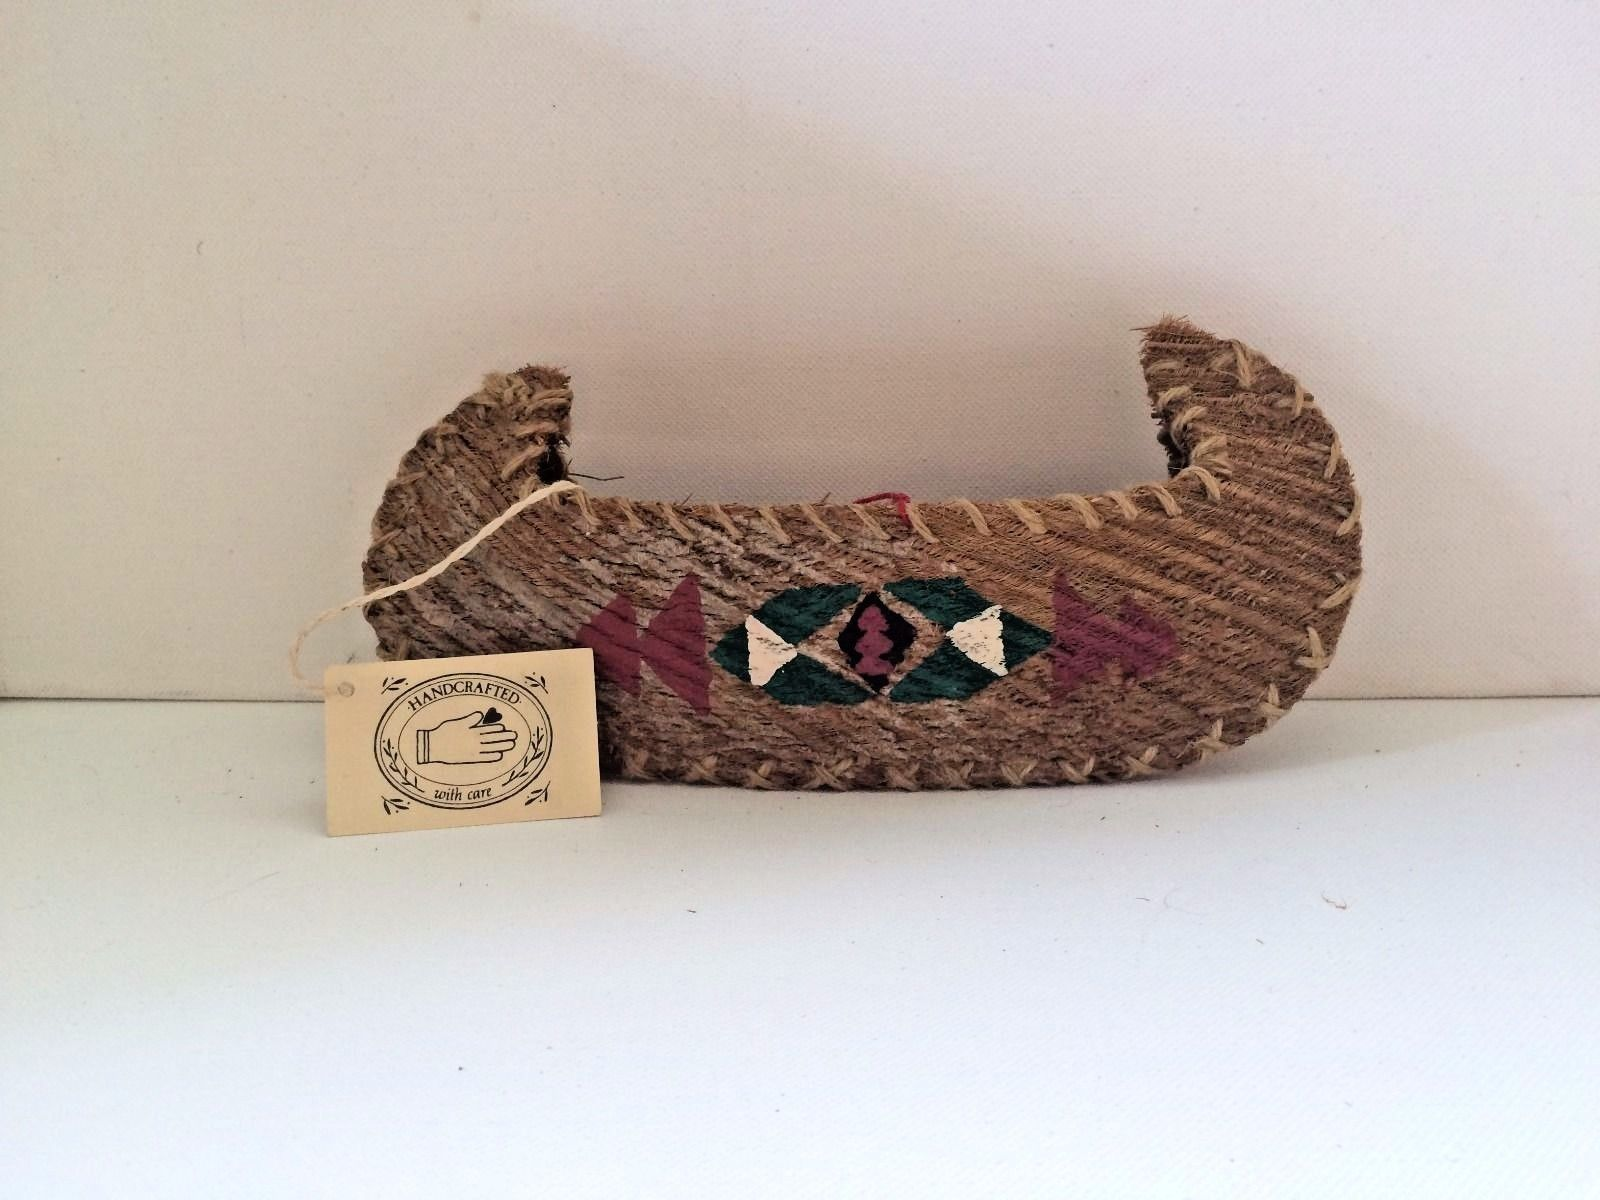 Handcrafted Midwest Importers Coconut Canoe and 50 similar items